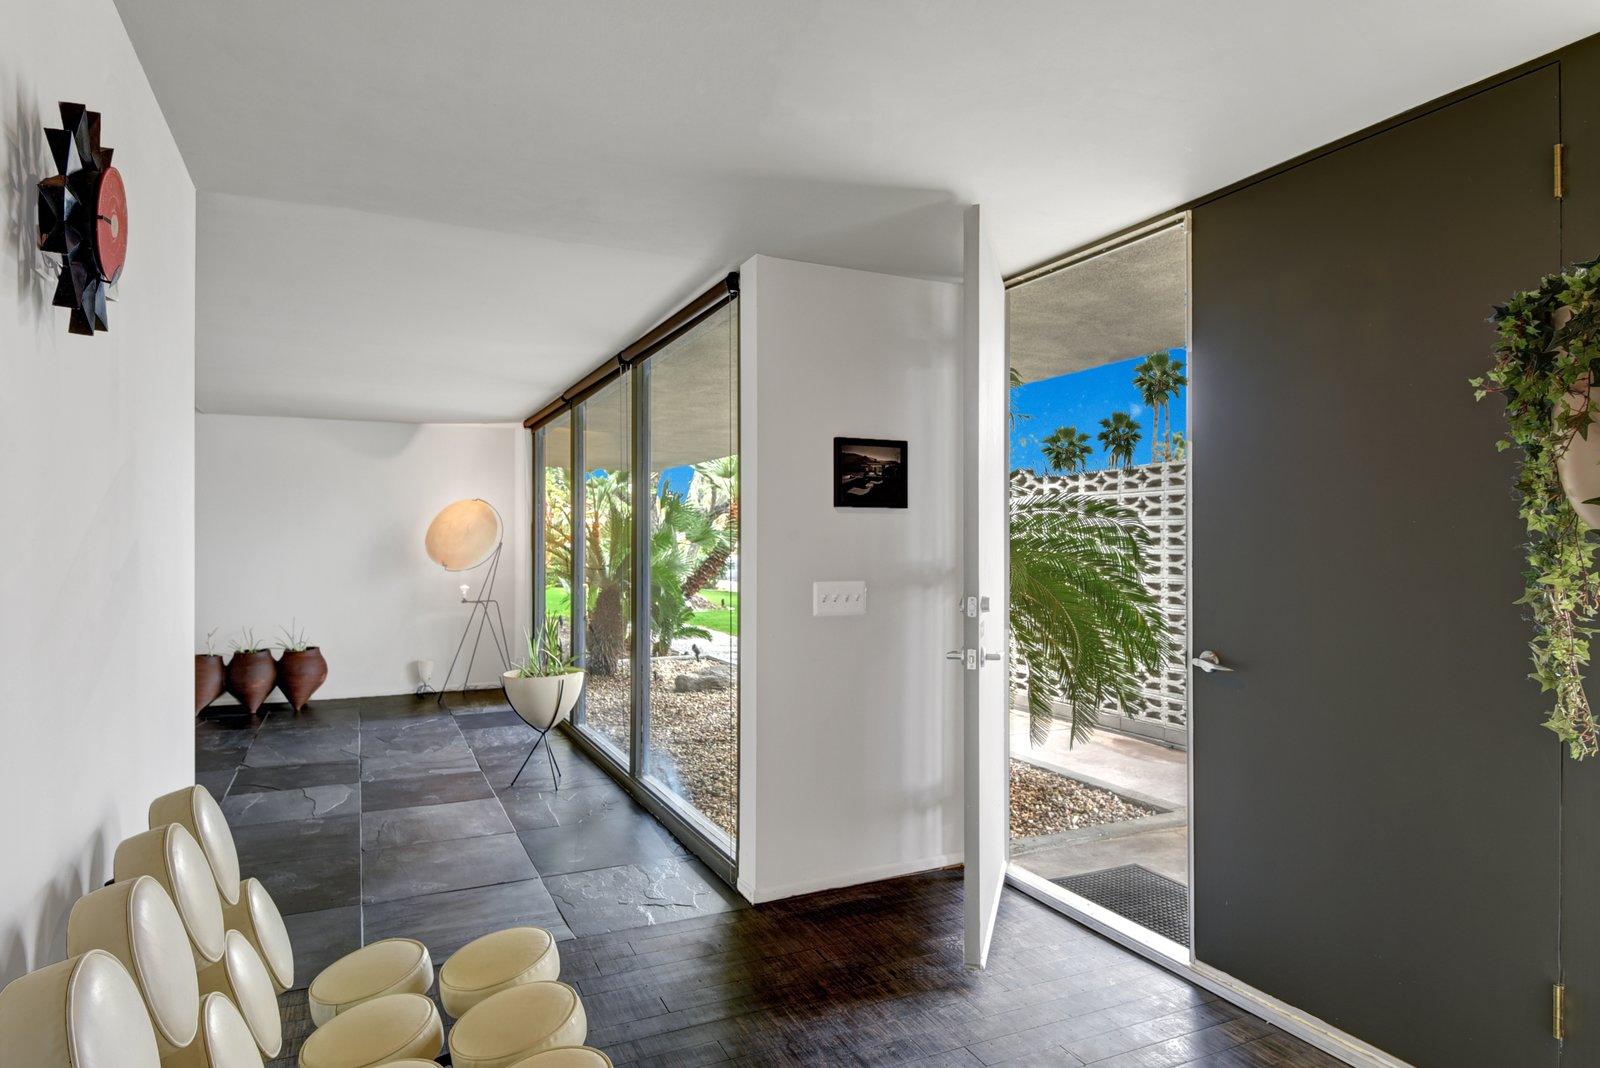 The entry hall has natural lighting thanks to floor-to-ceiling windows, and privacy thanks to an exterior privacy wall.